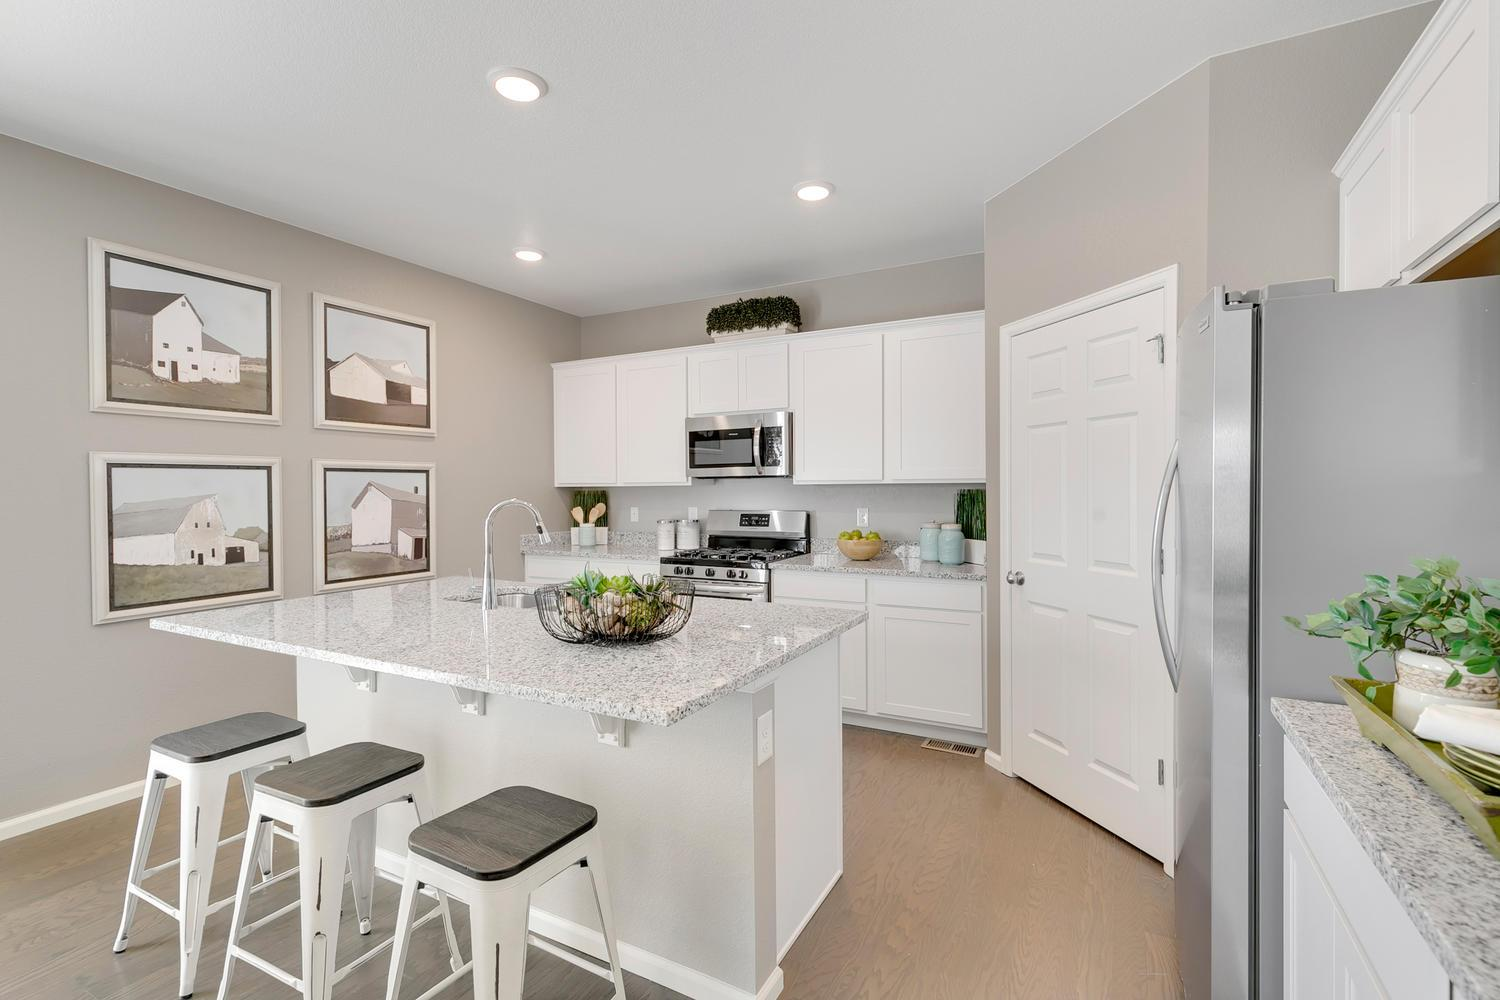 Kitchen featured in the HERRING By D.R. Horton in Fort Collins-Loveland, CO